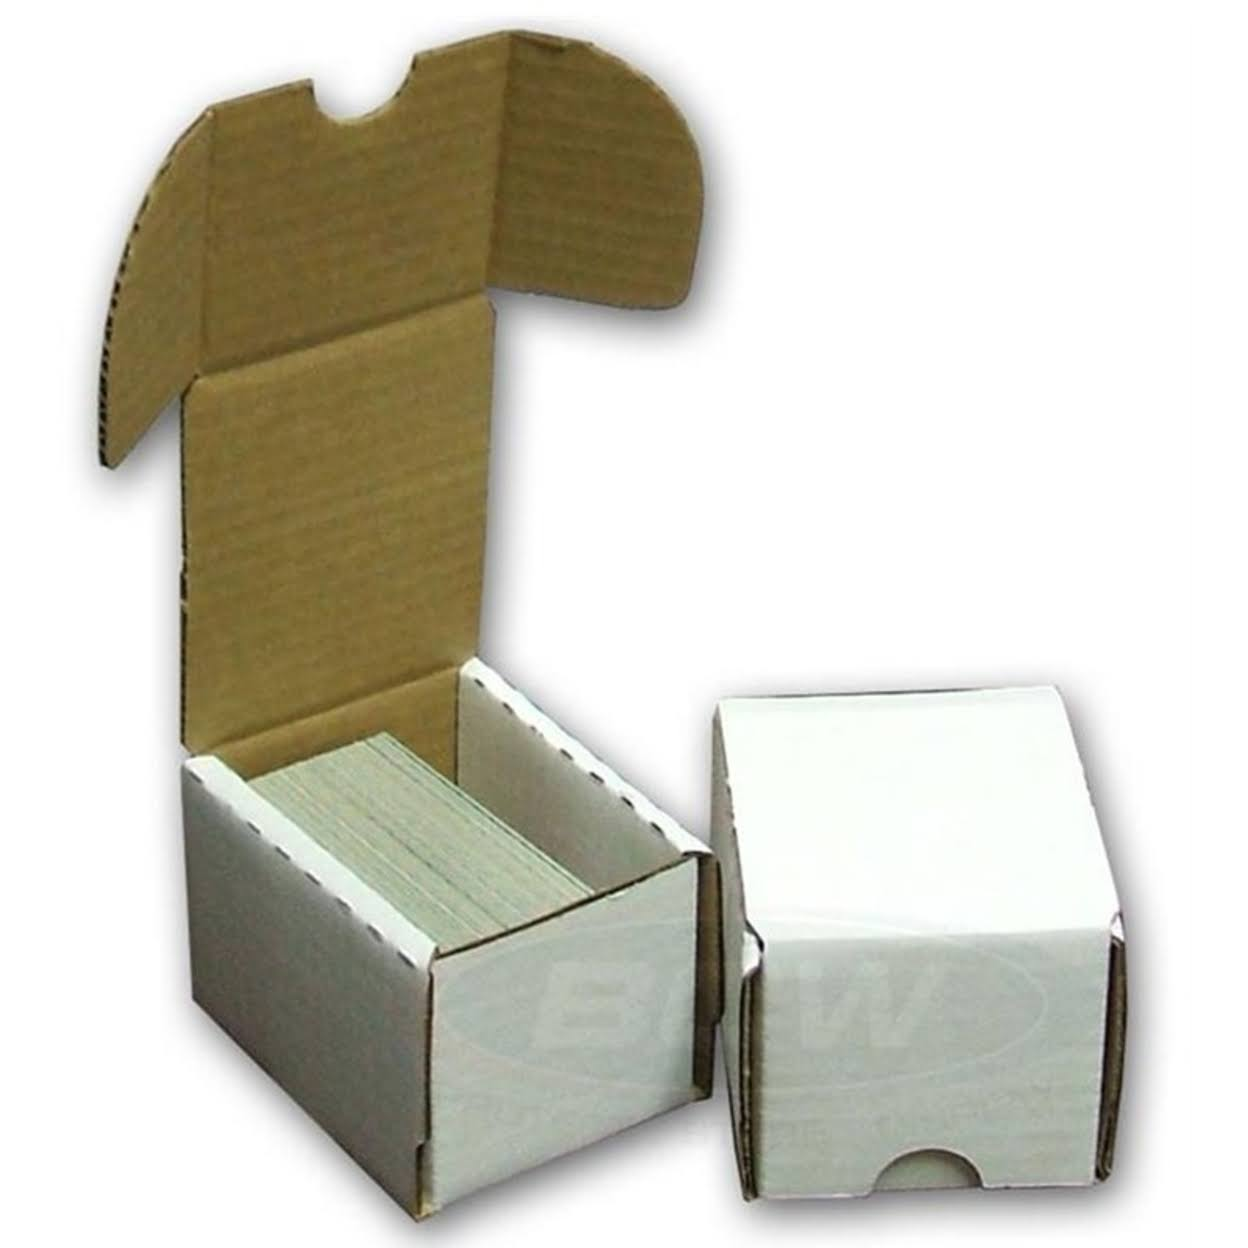 50 BCW Storage Boxes (100 Count) Corrugated Cardboard Storage Box